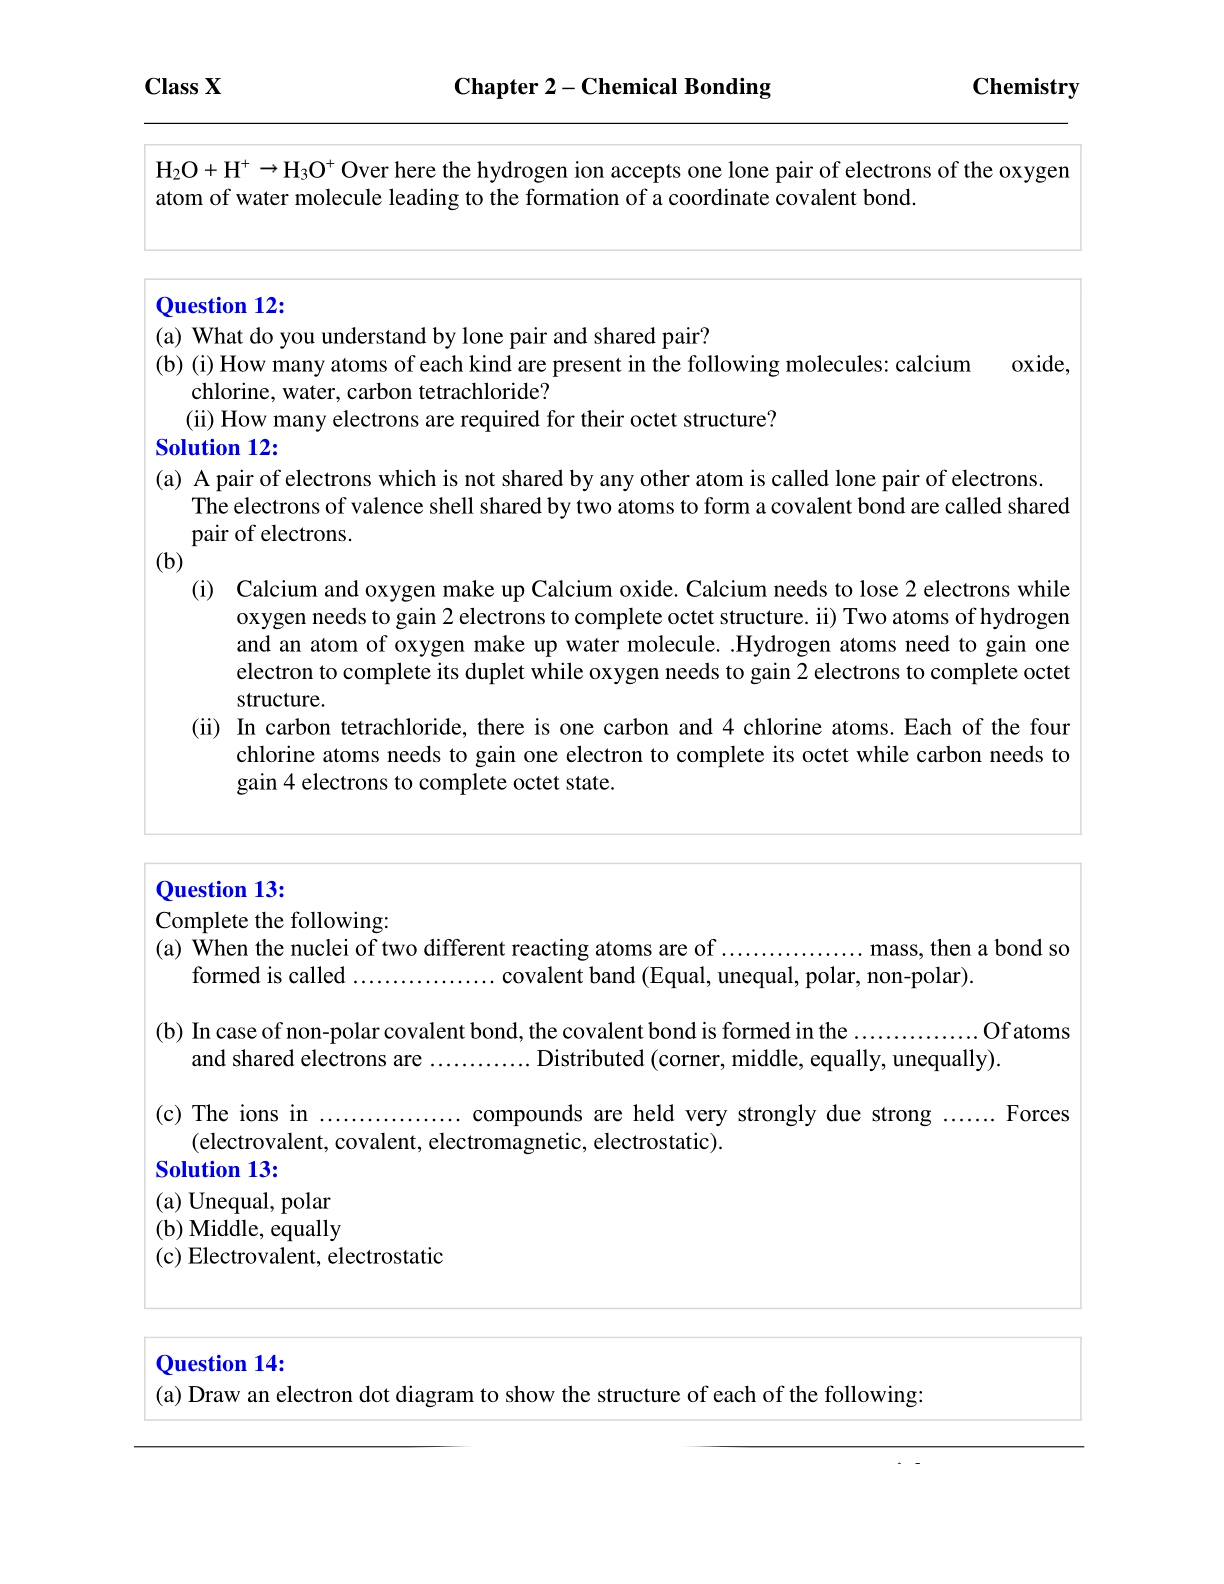 Chapter 8 covalent bonding workbook answer key